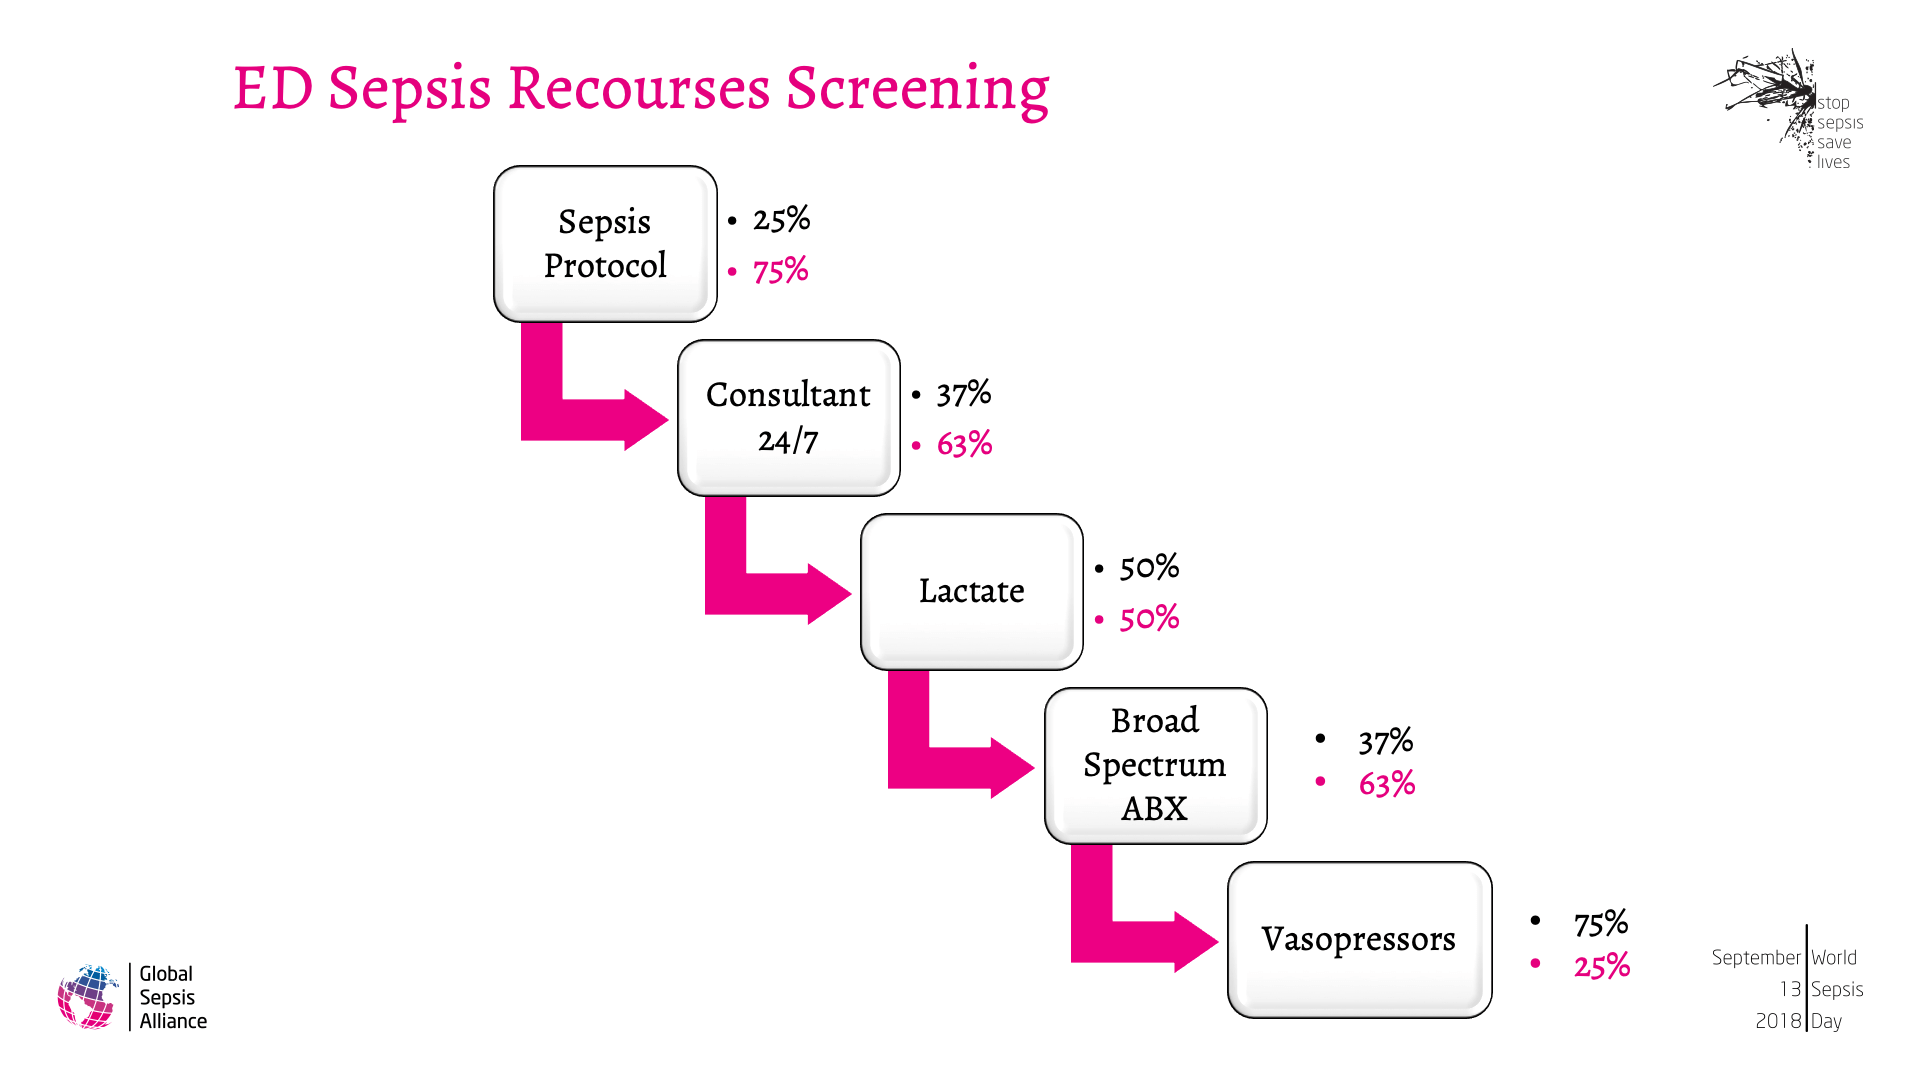 Progress of the National Sepsis Plan in Saudi Arabia7.png